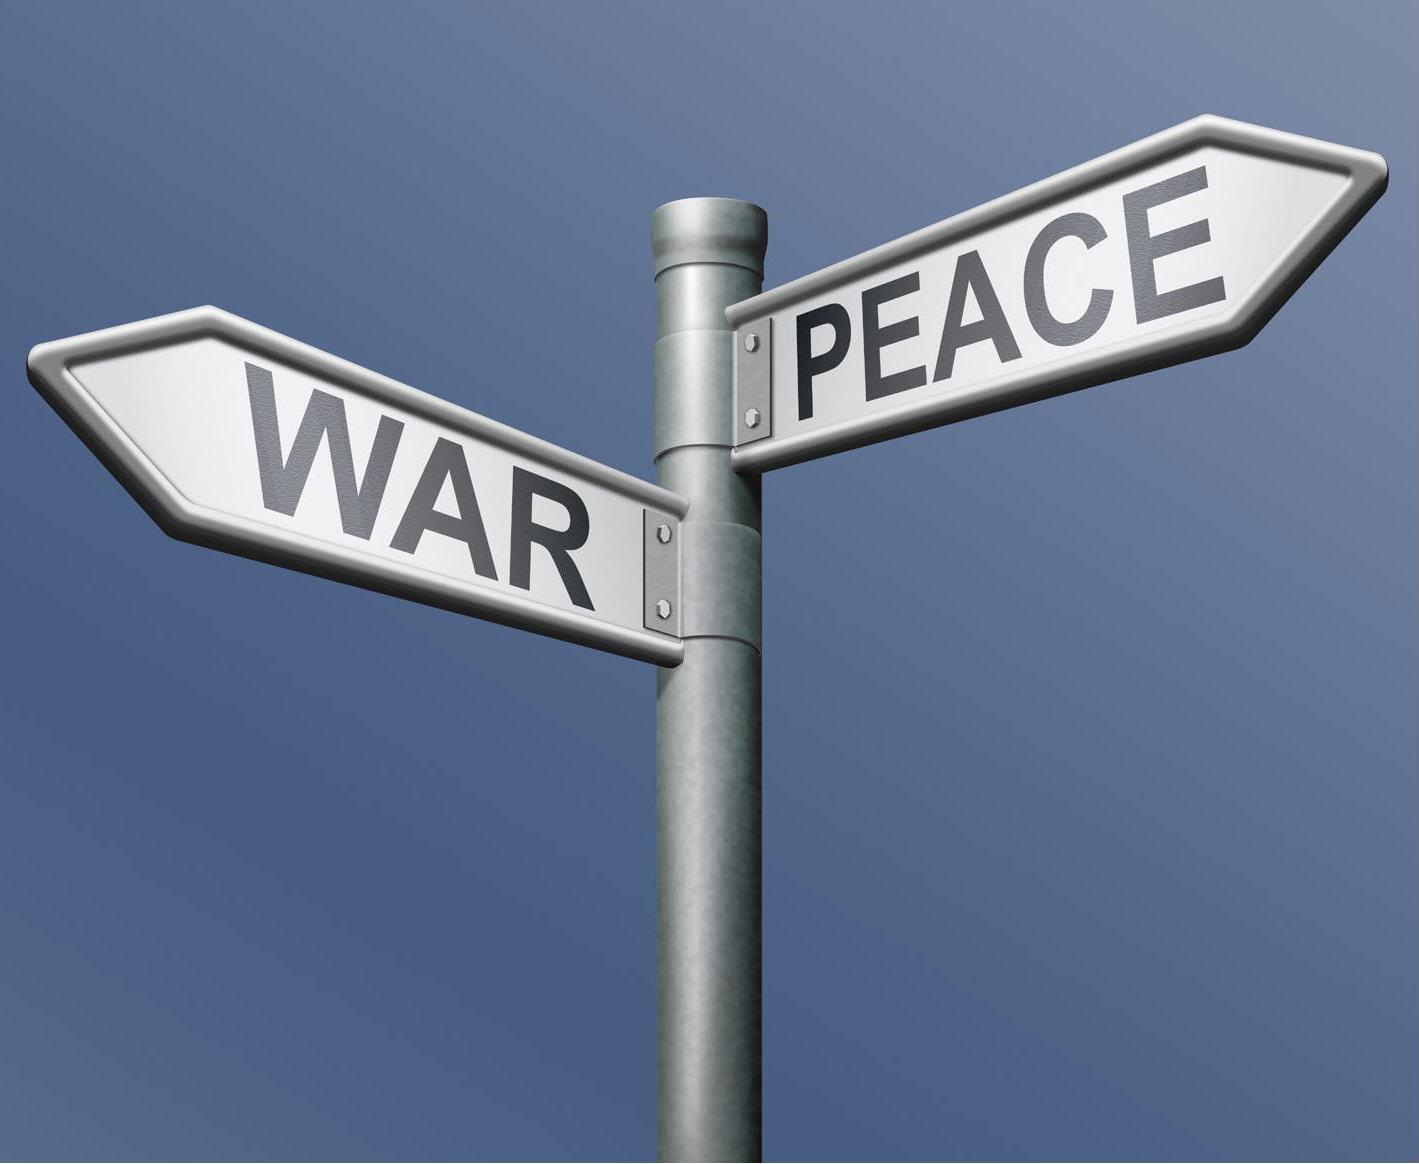 war and peace essay essay on war and peace war and peace art essay on war and peace